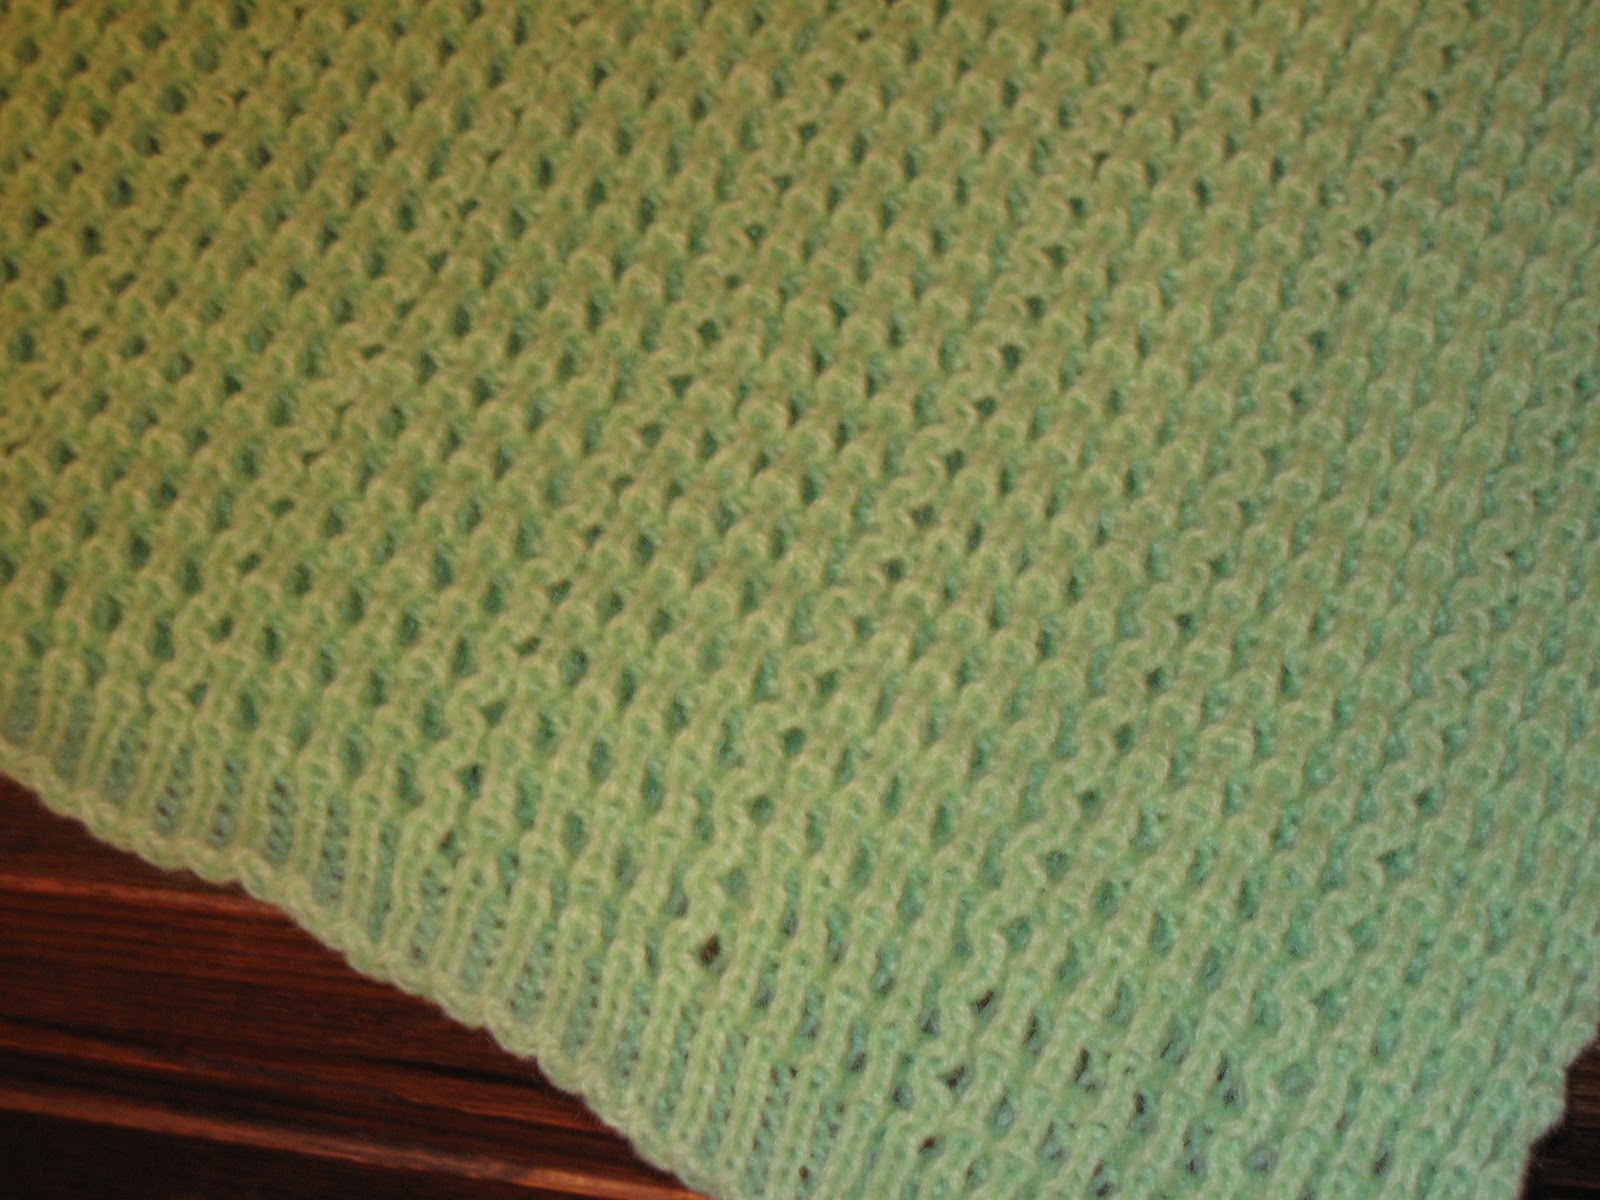 Knitting Stitches And Patterns Diana Biggs : Diana natters on... about machine knitting: New Crib-Sized Afghan